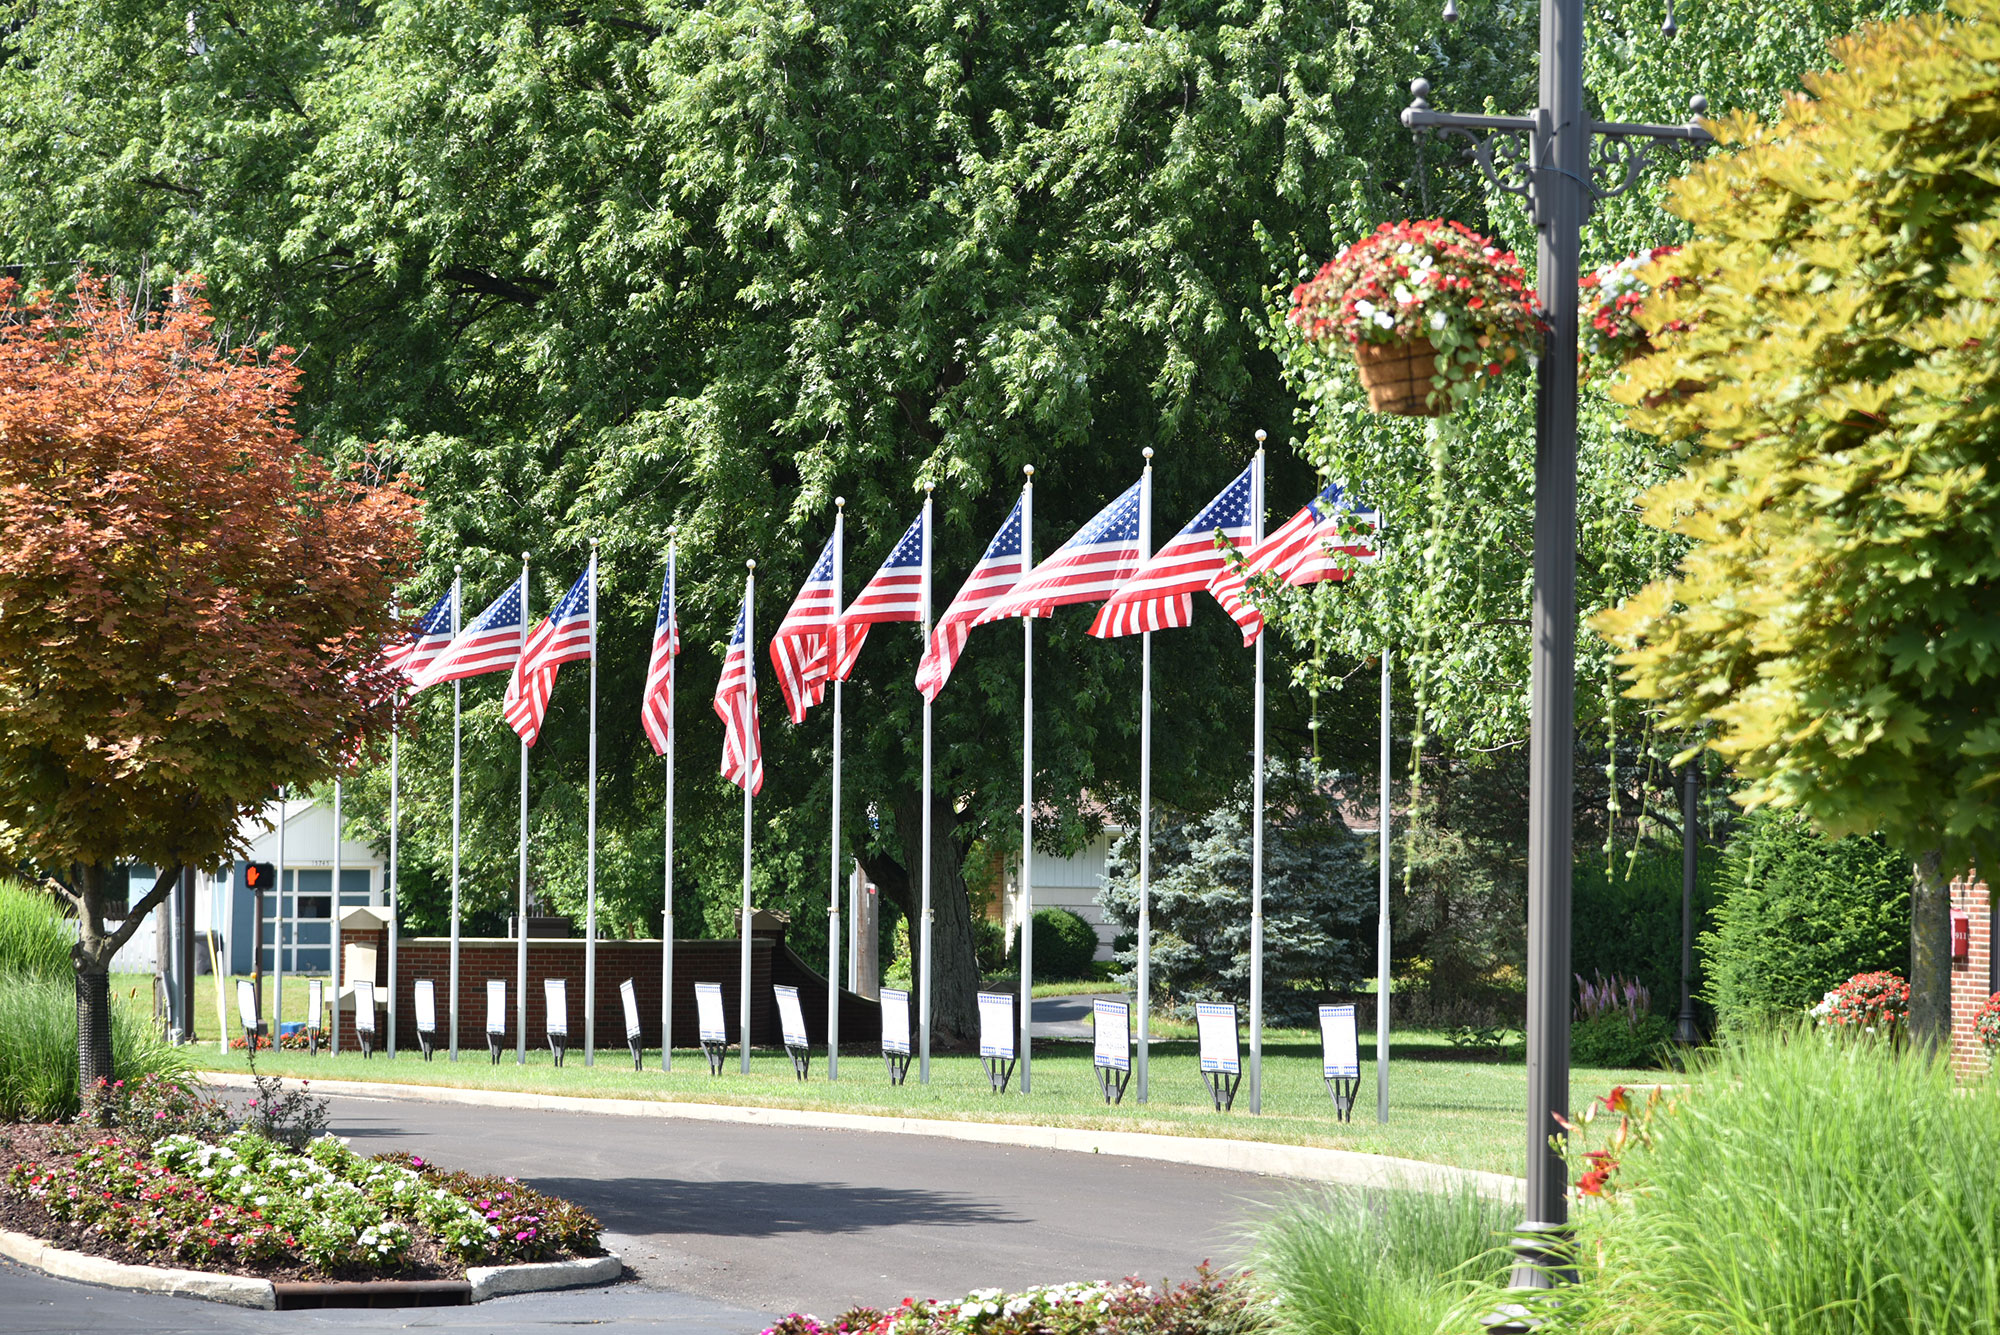 Flags in a park